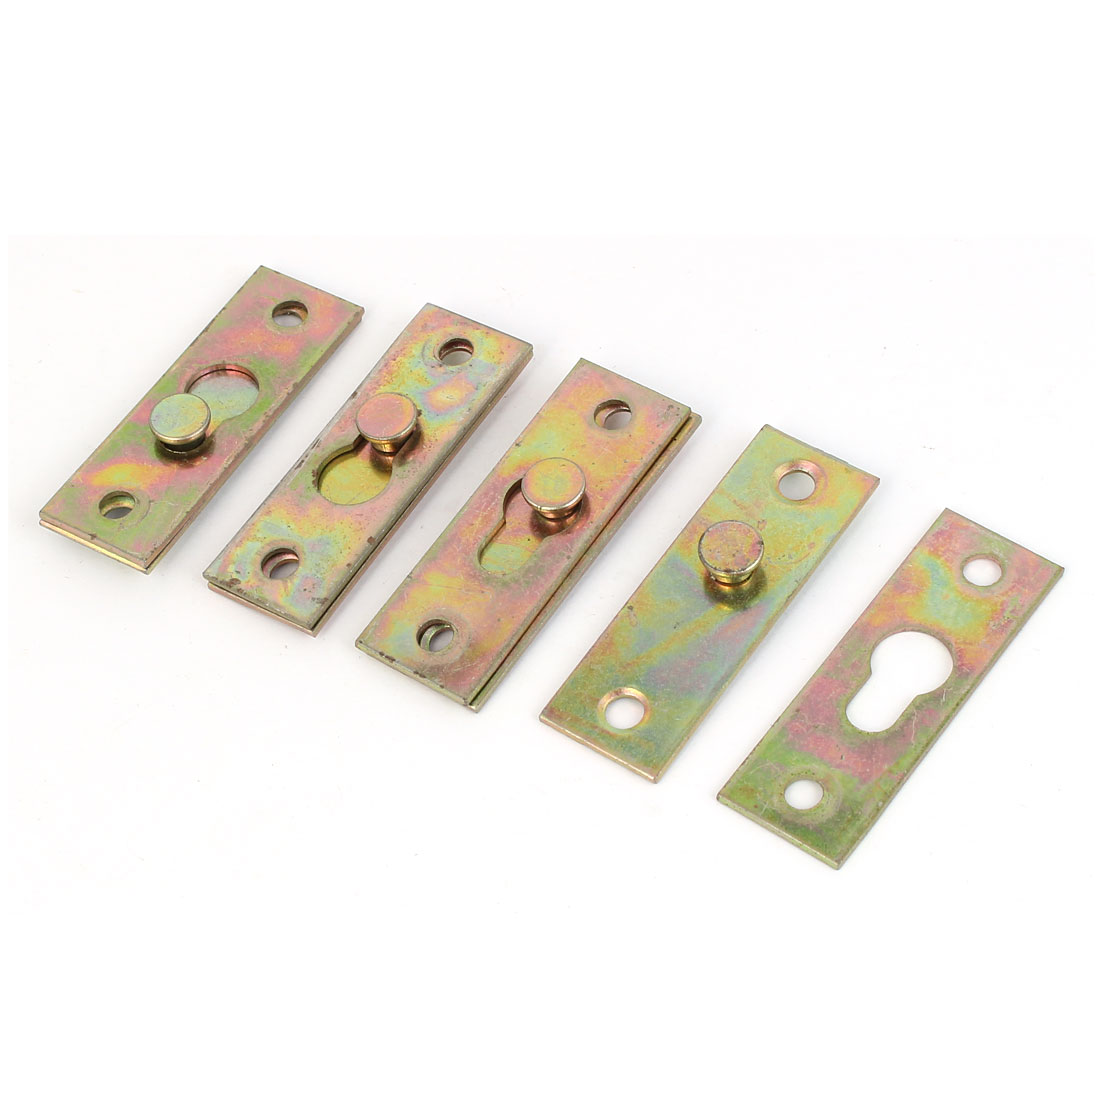 4Pcs Bed Rail Brackets Furniture Bed Rail Hook Plate Bracket Connector Brass Tone For Use Easy Installation All Kinds Home